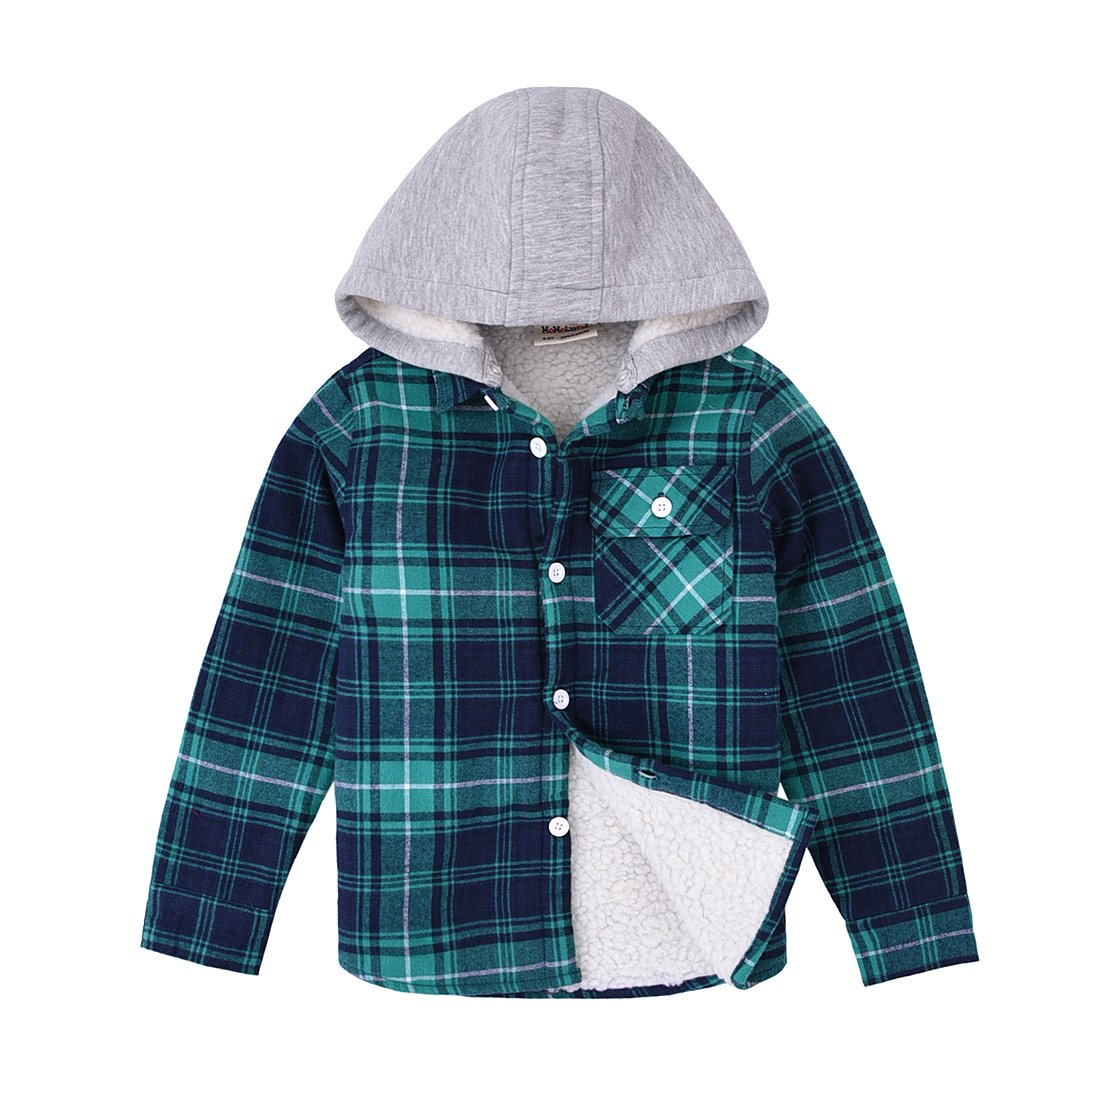 1a3582e2 Soft Fleece Lining to Keep Warm Hood is Removable,You Could Remove It When  You Don't Need It Single Pocket on Front Chest with Button Down Flap